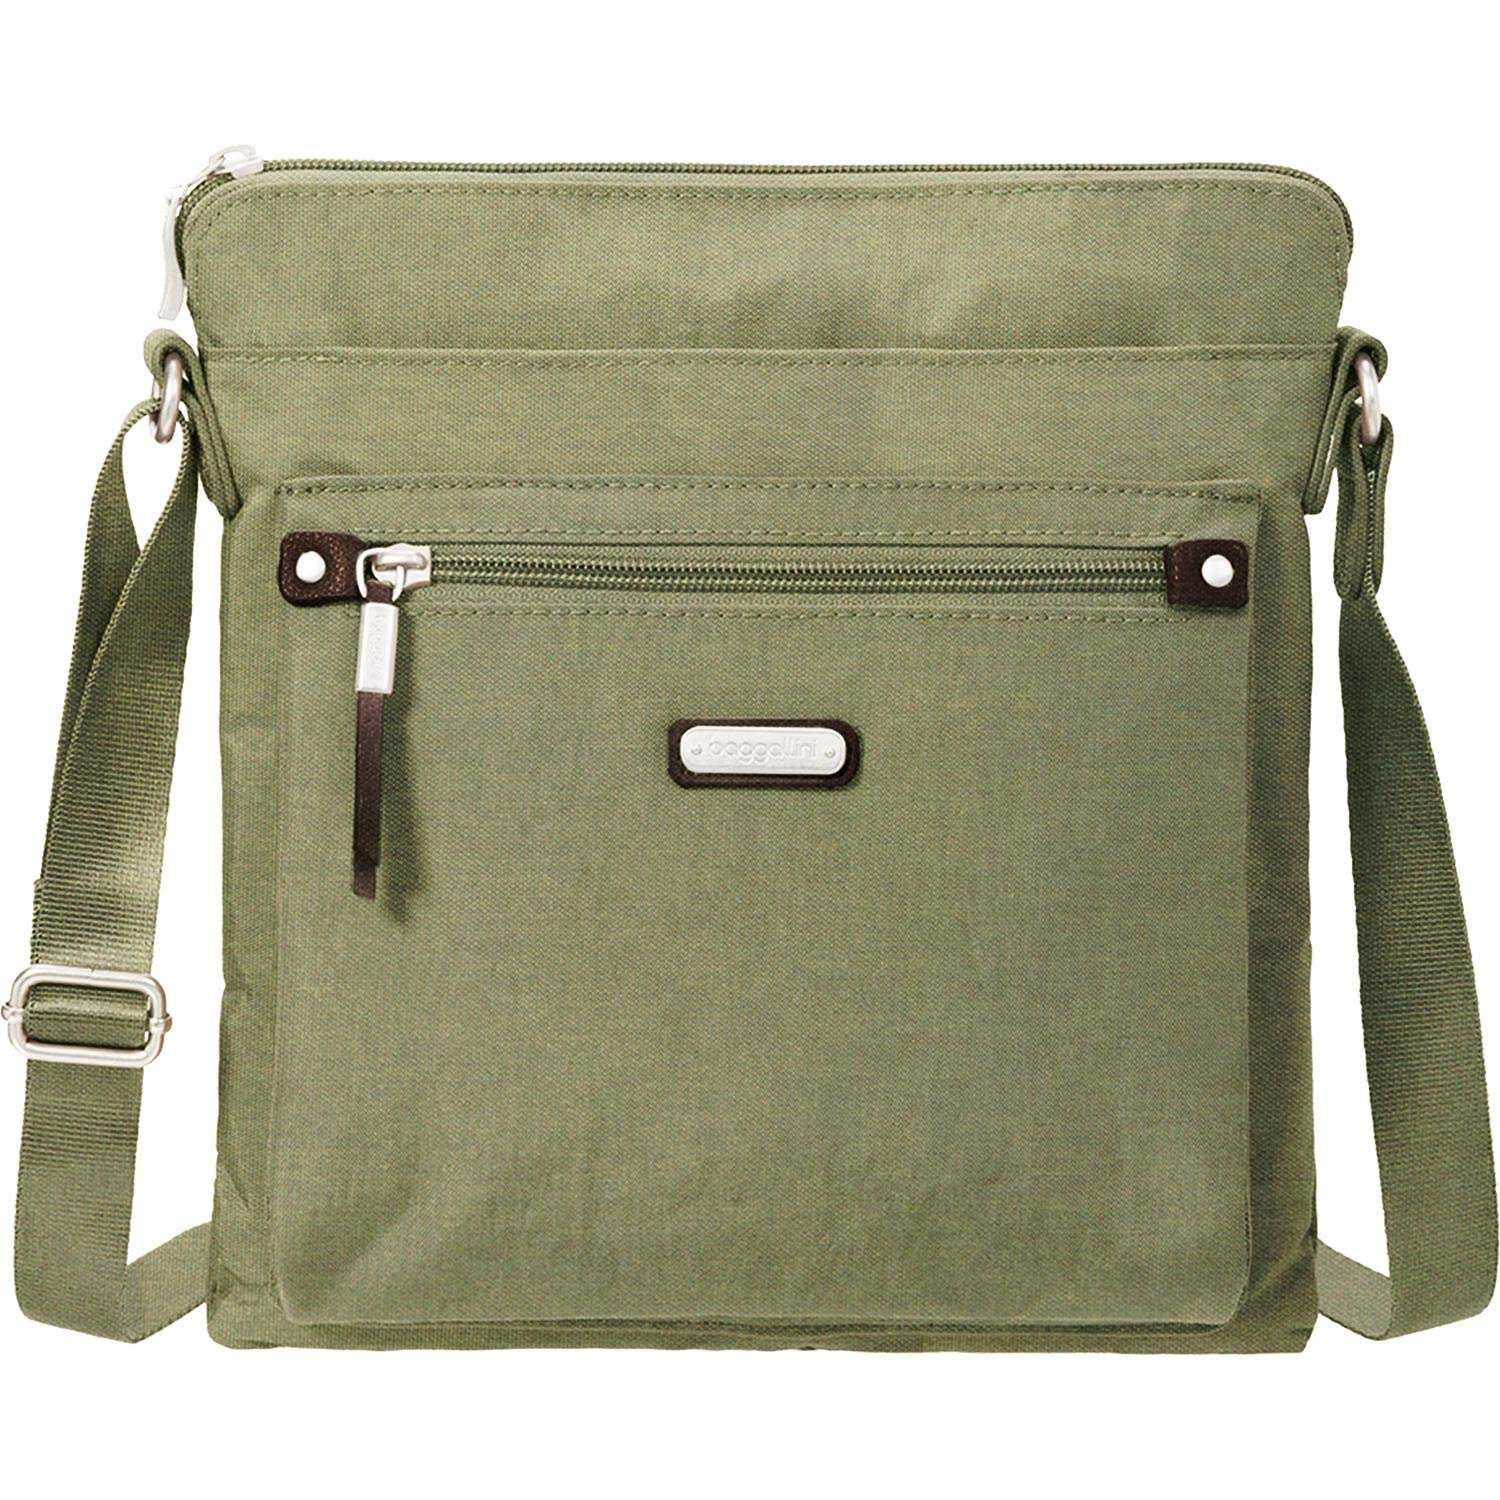 Baggallini Go Bagg with RFID Phone Wristlet (Olive)